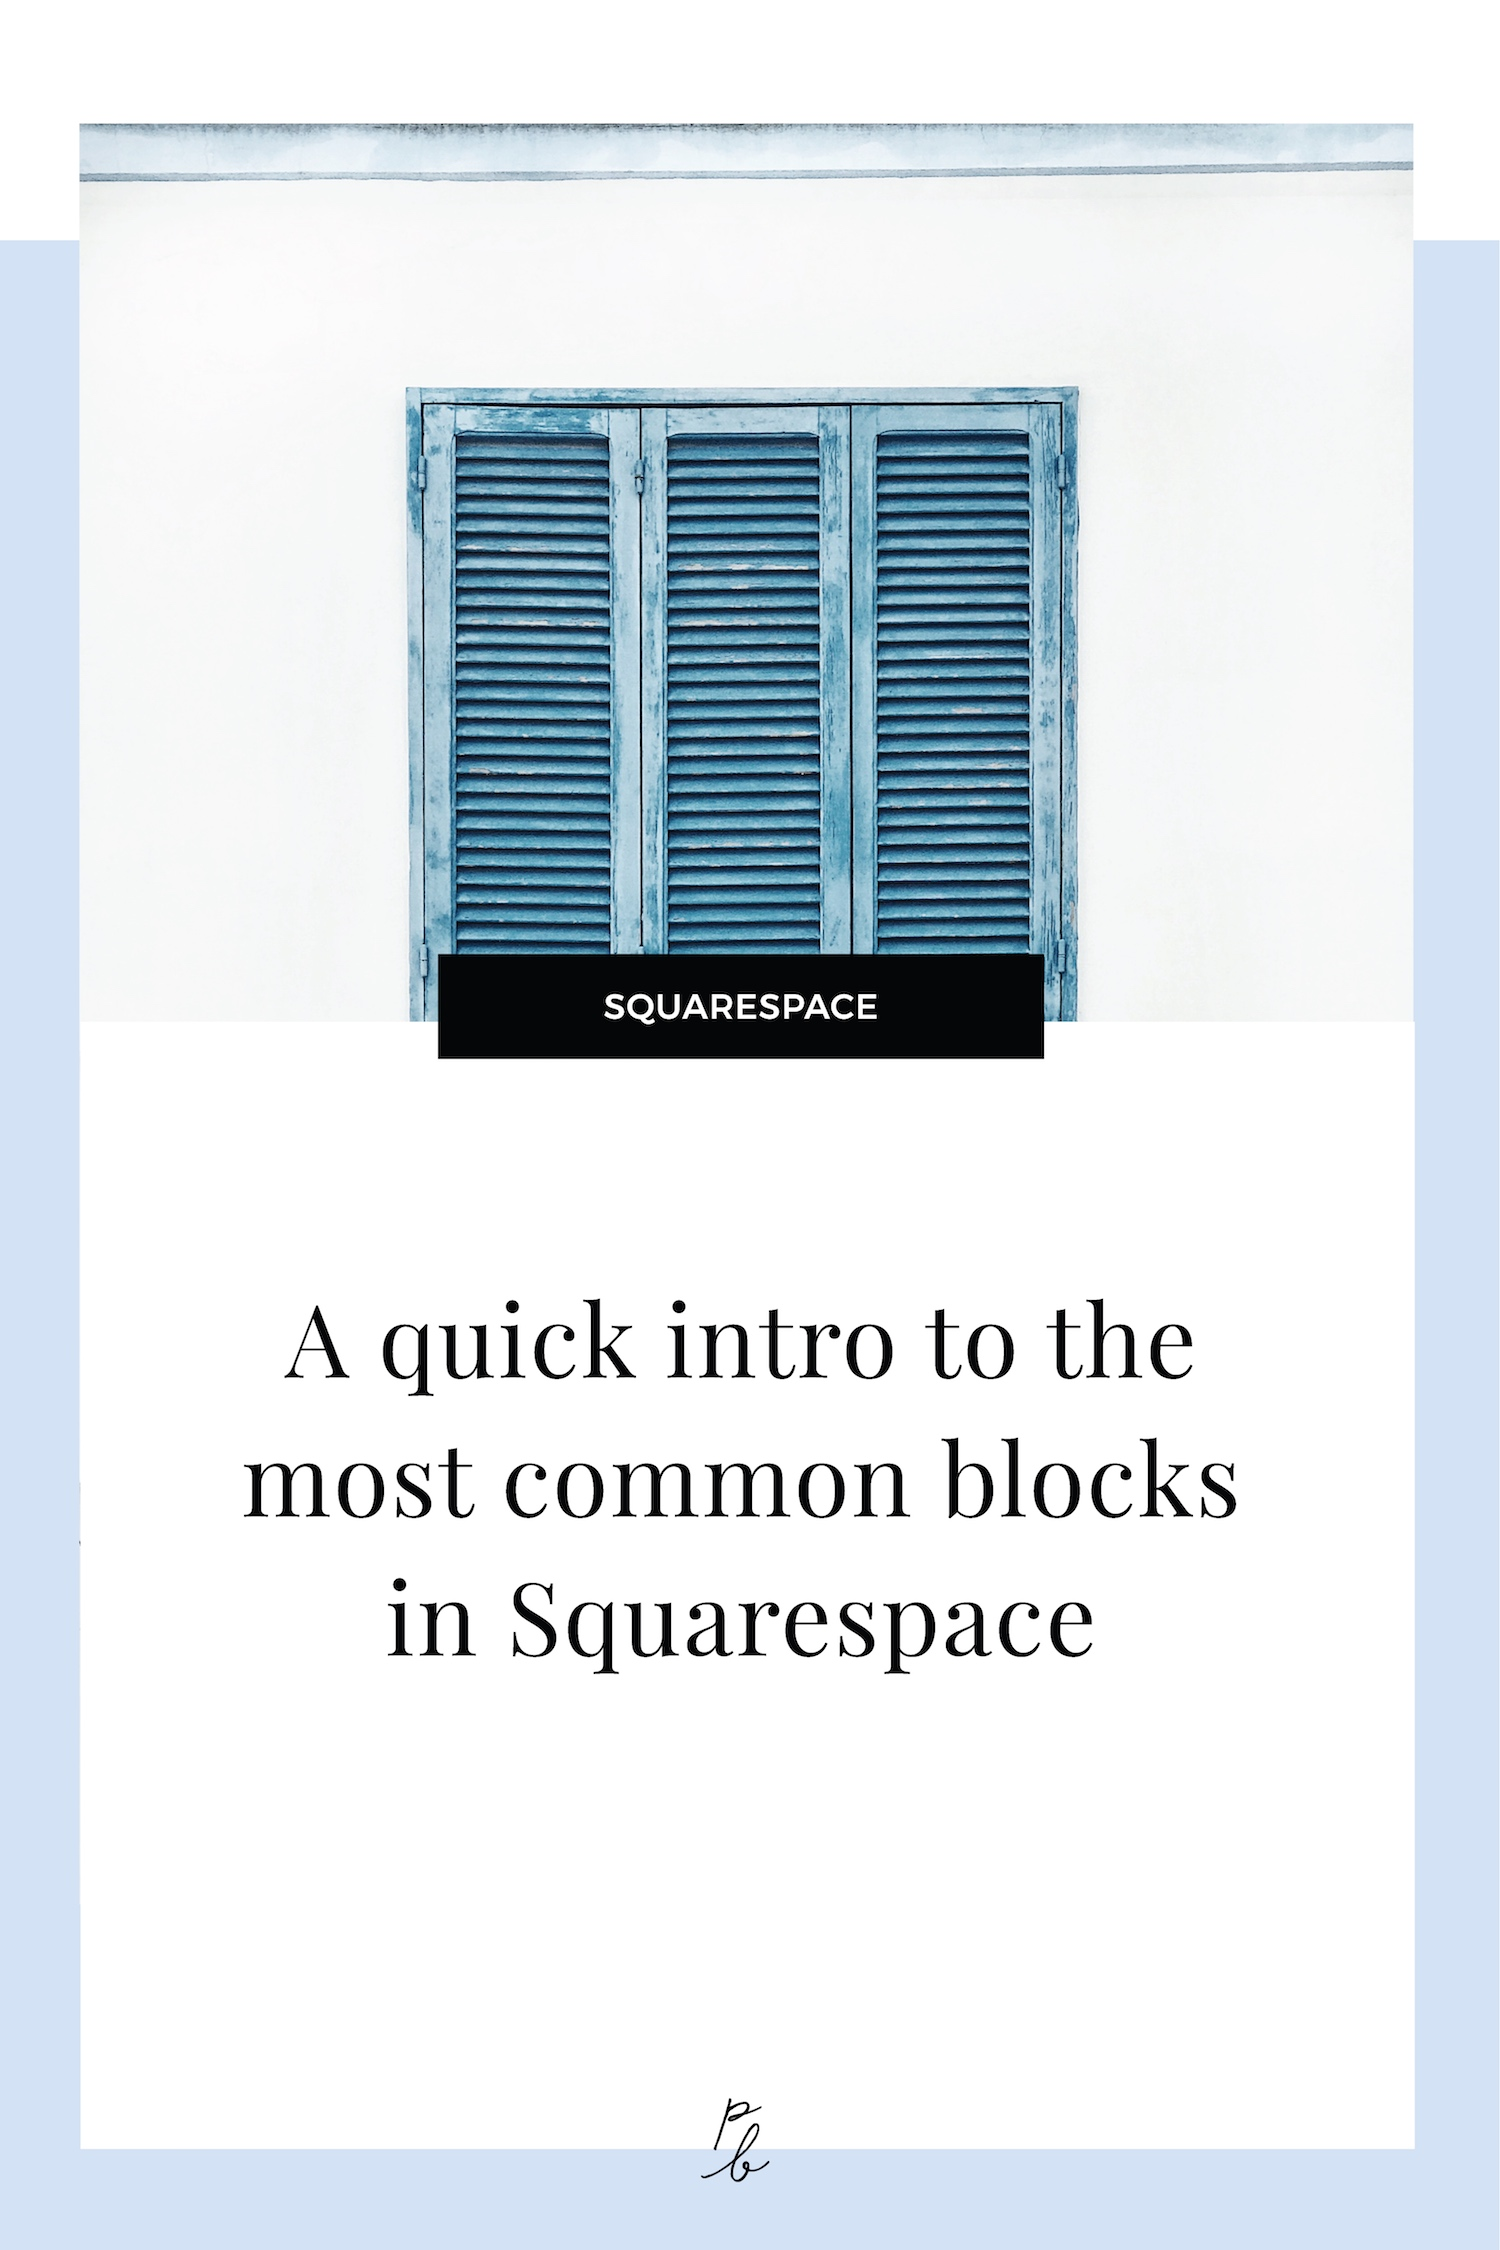 A quick intro to the most common blocks in Squarespace.jpg